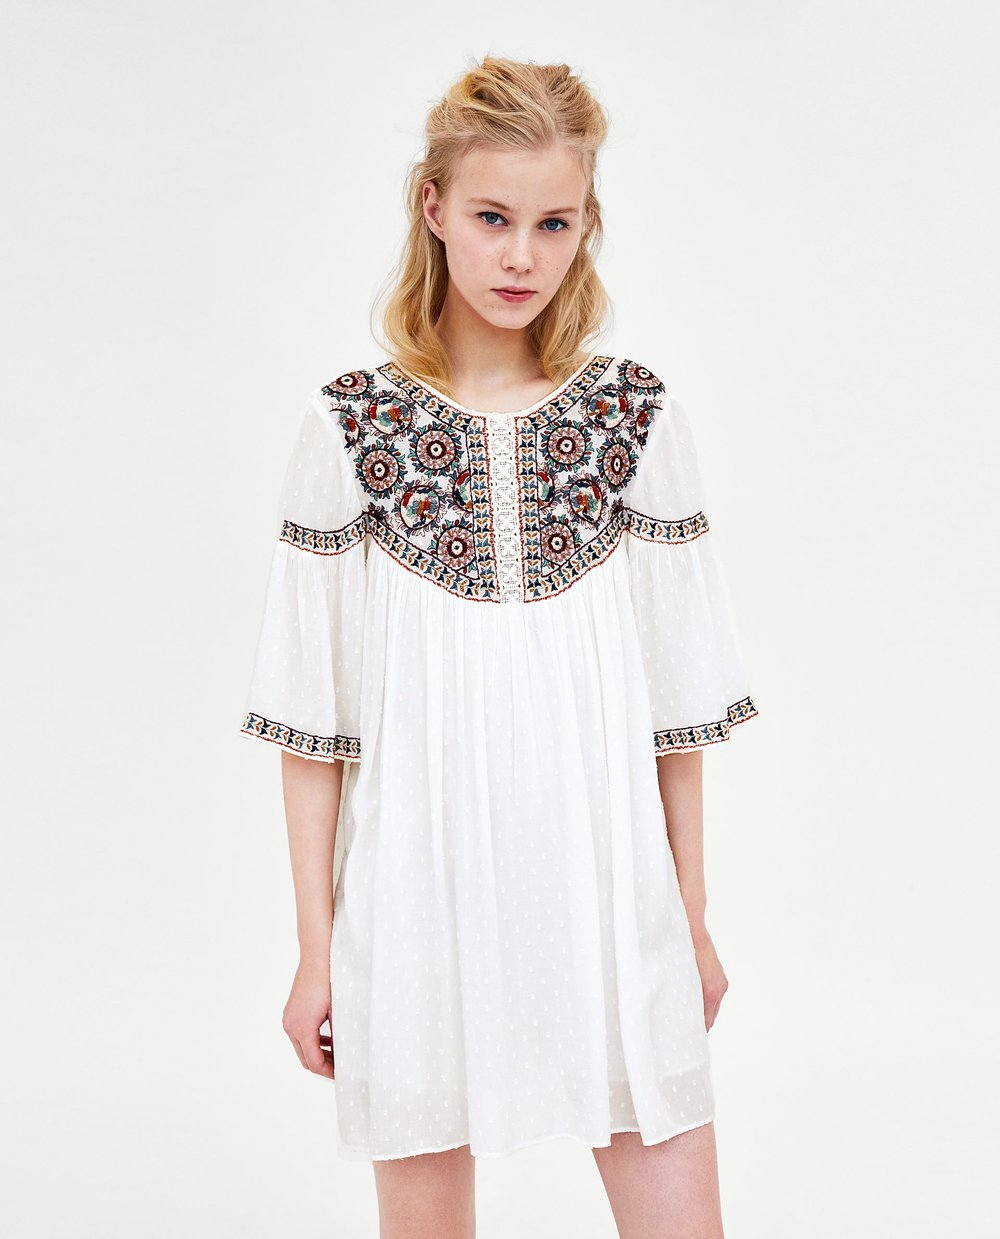 Zara-PLUMETIS-EMBROIDERED-DRESS-White.jpg